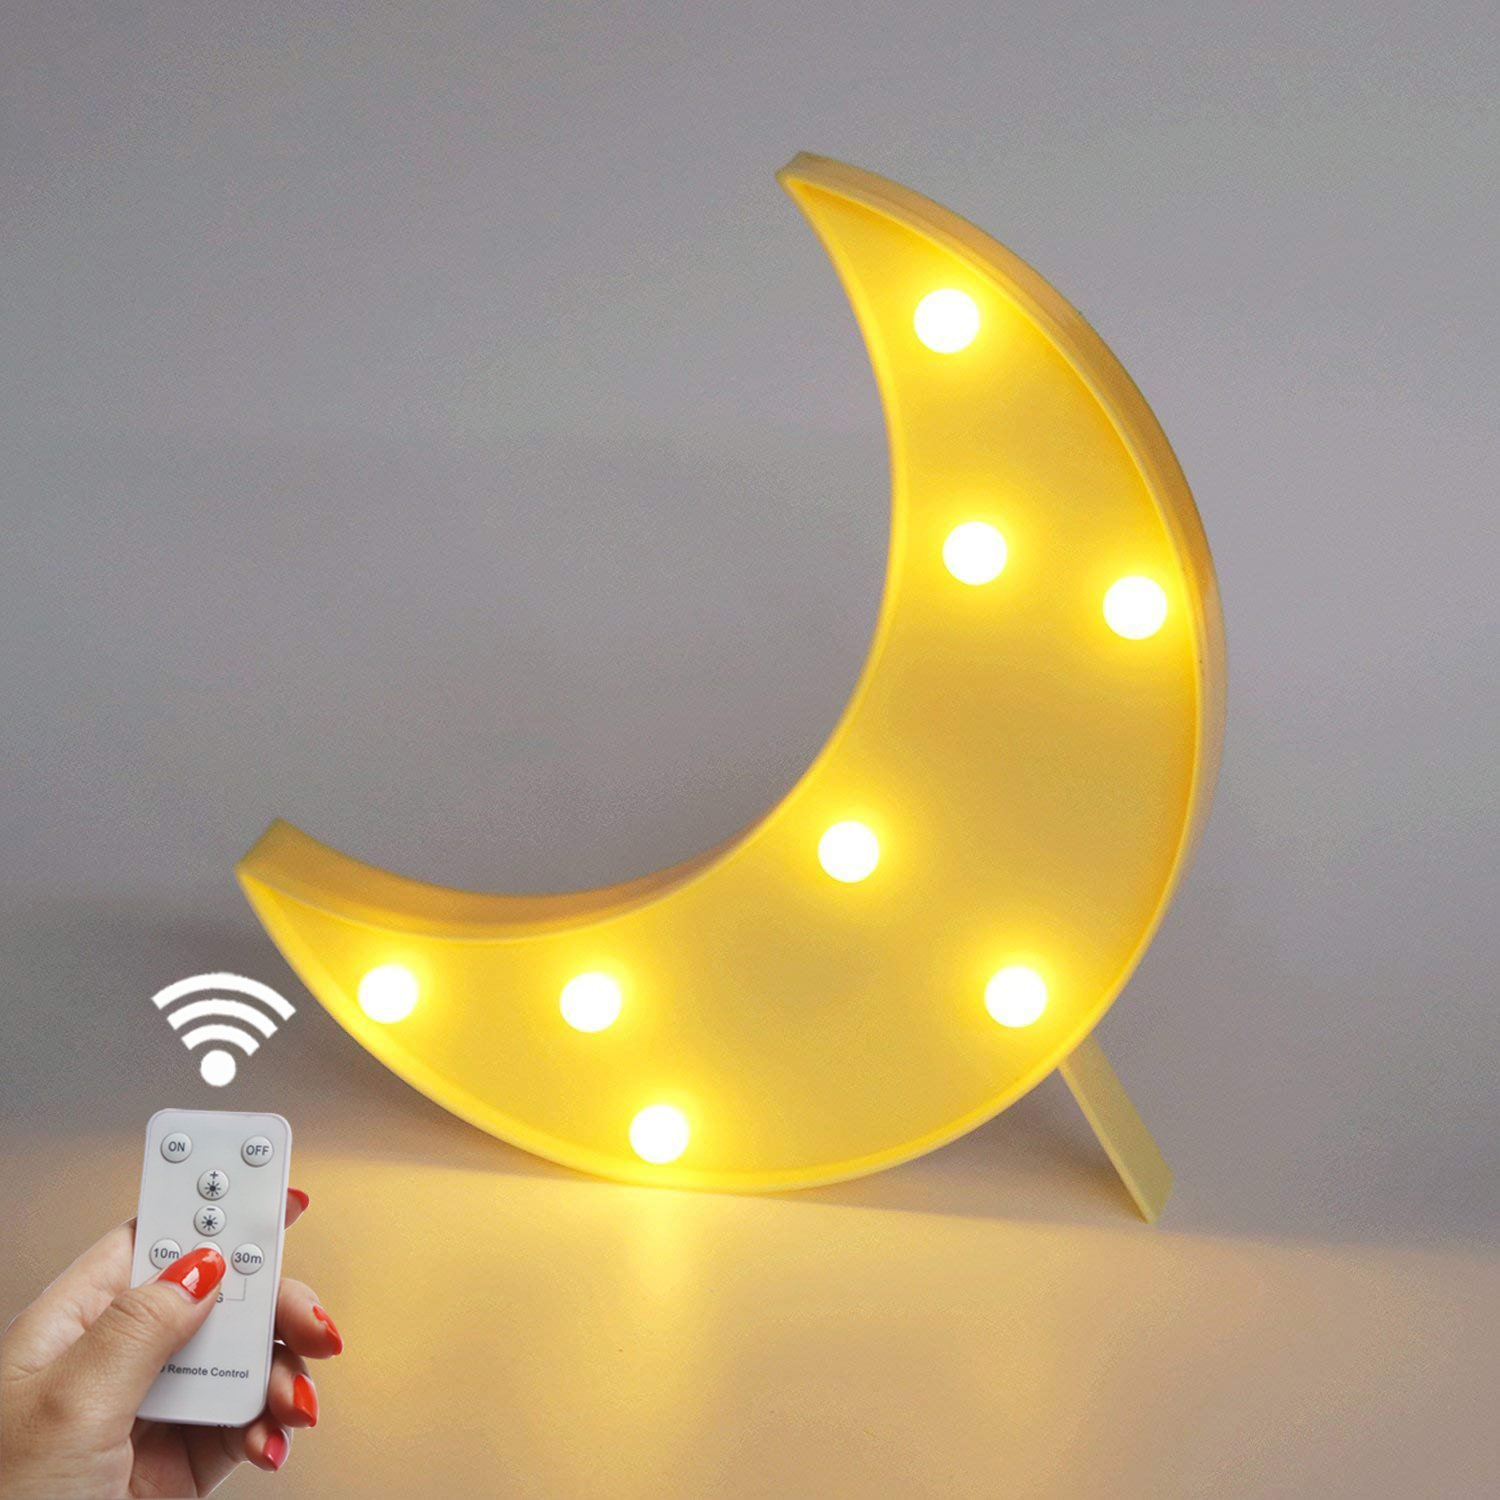 Battery Operated Night Light LED Marquee Sign with Wireless Remote Control for Kids' Room, Bedroom, Gift, Party, Home Decorations (Yellow Moon)